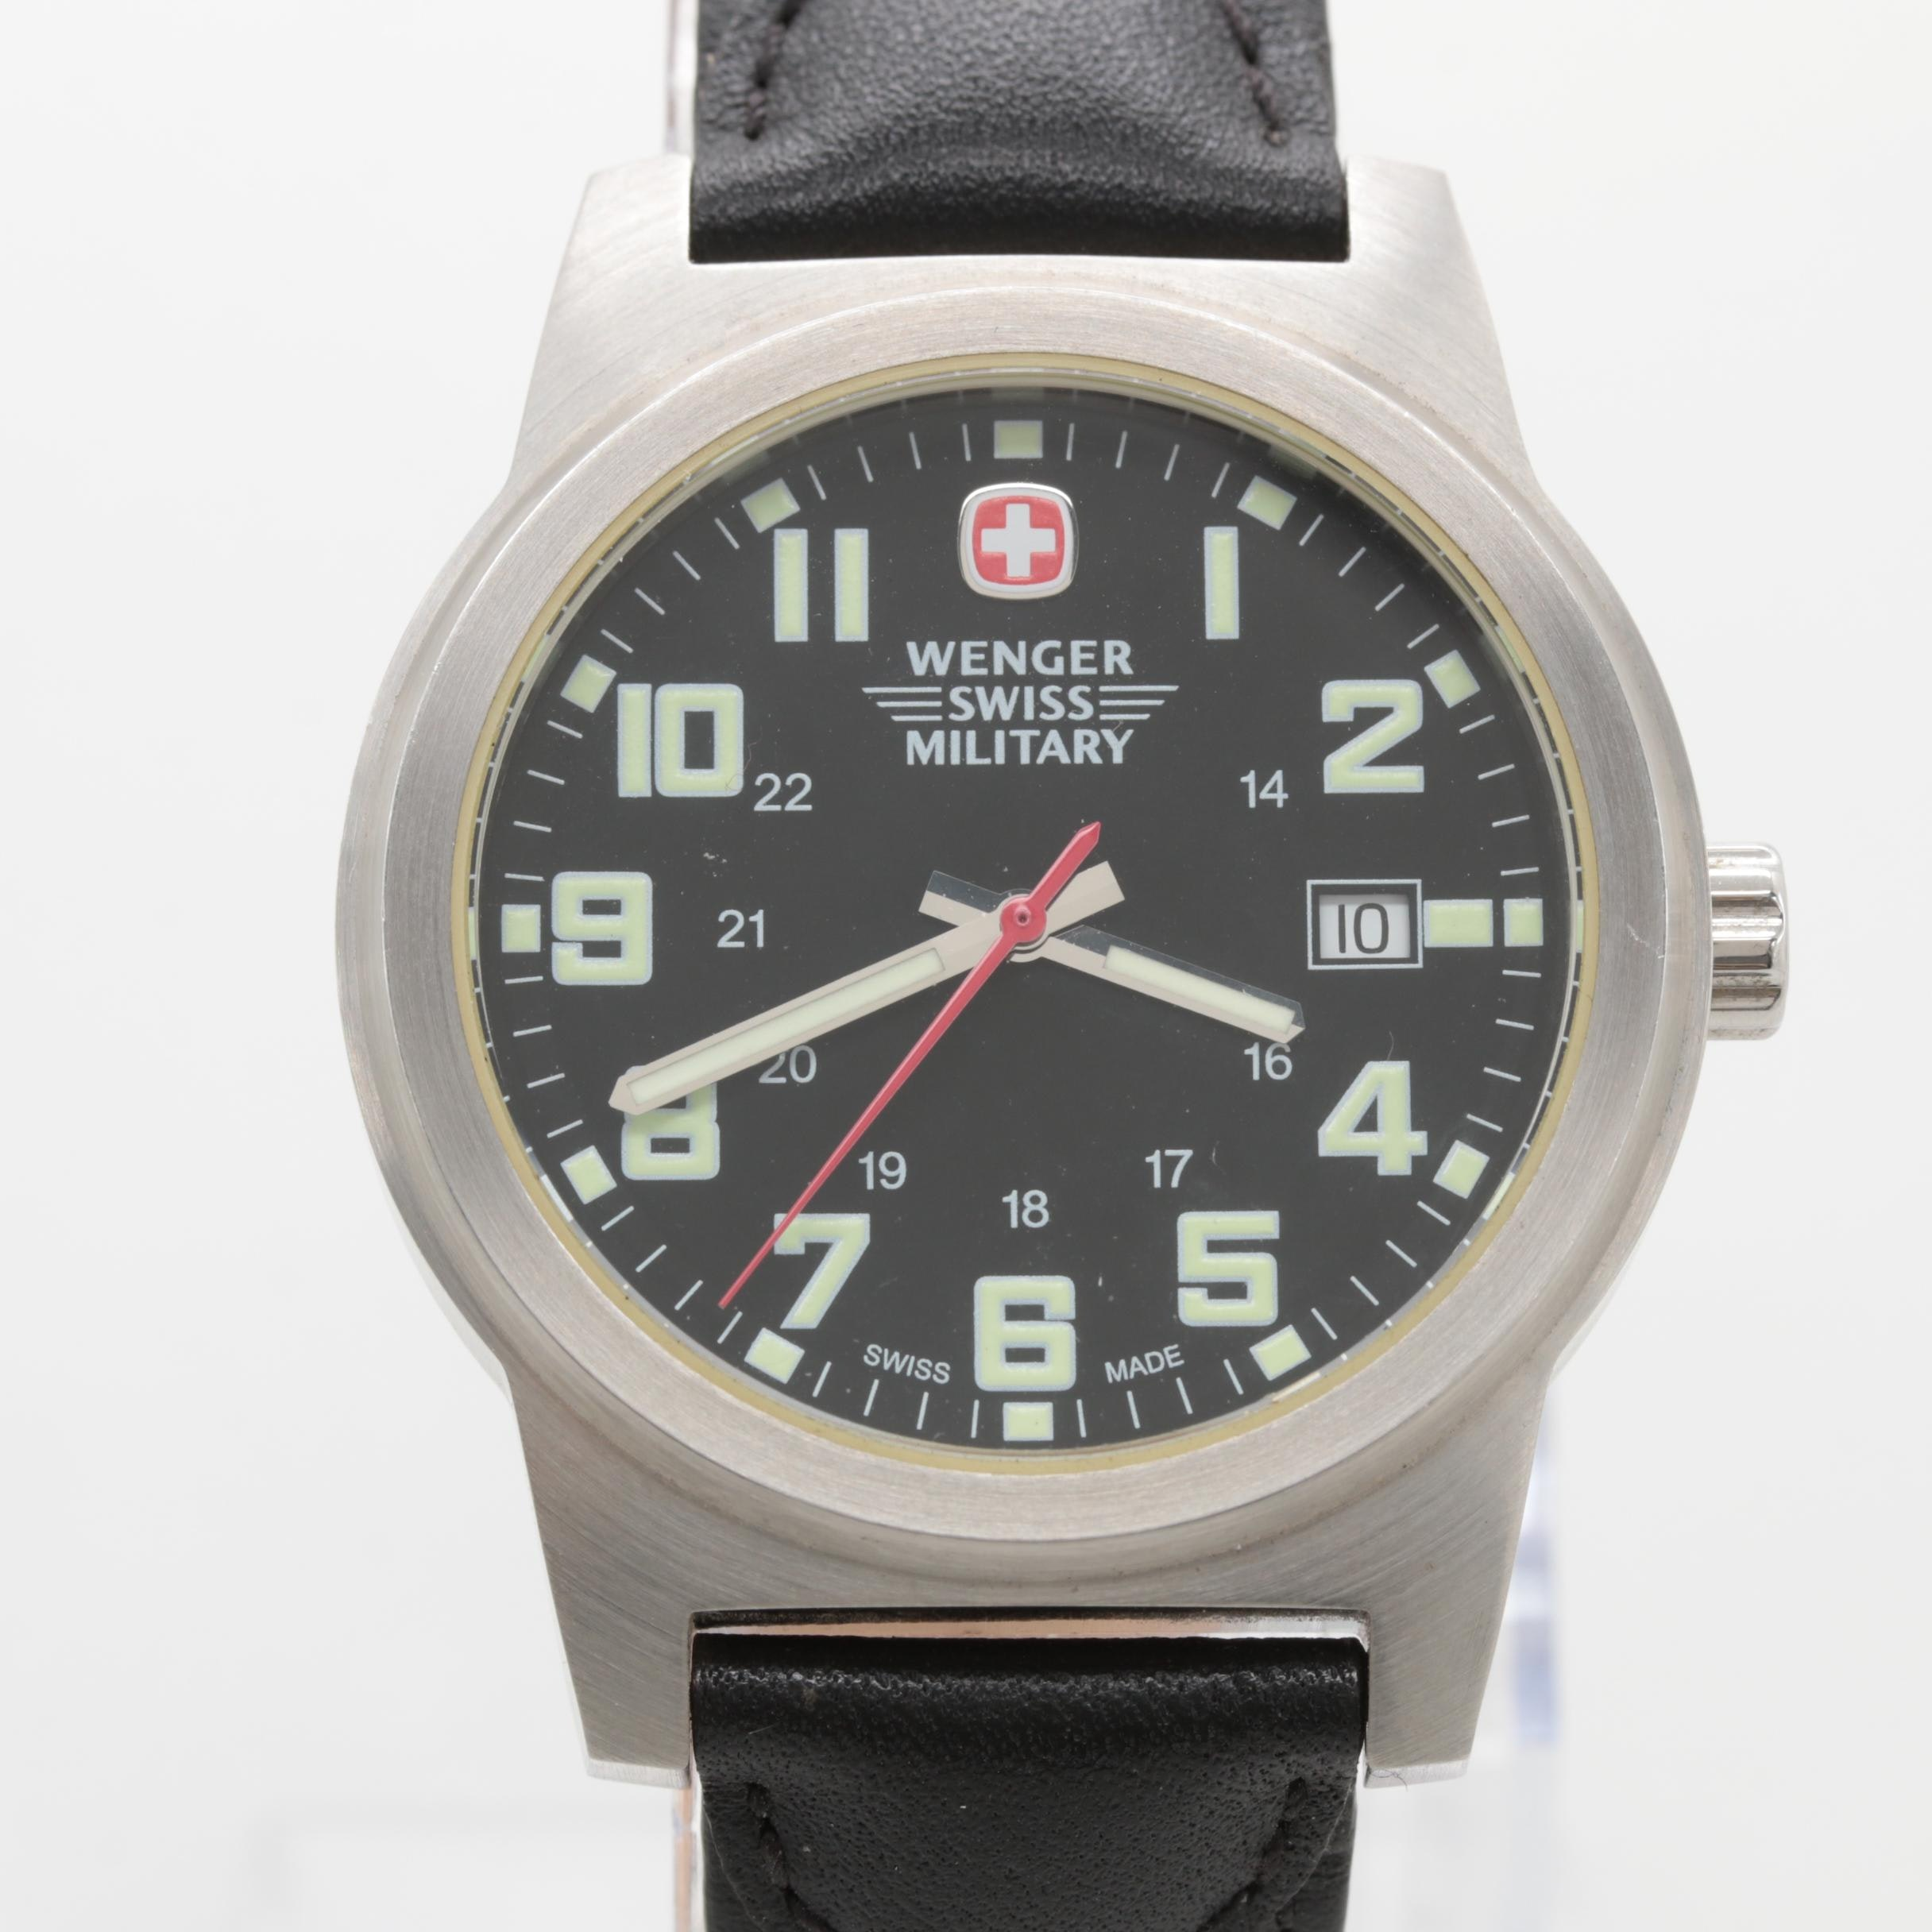 Wenger Stainless Steel Swiss Military Model 7290X Wristwatch